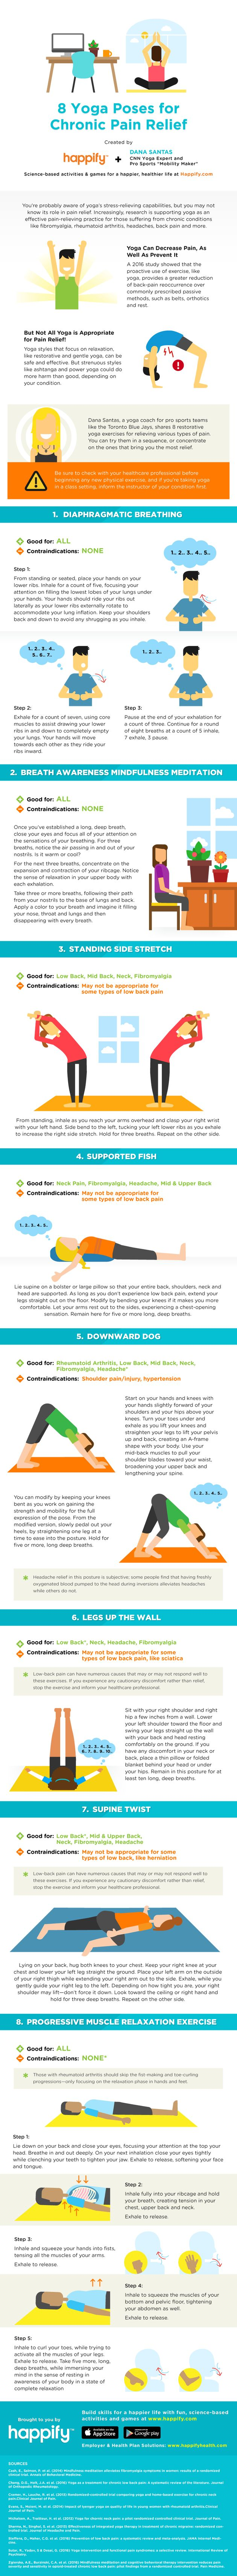 8 Yoga Poses That Will Help Ease Chronic Pain